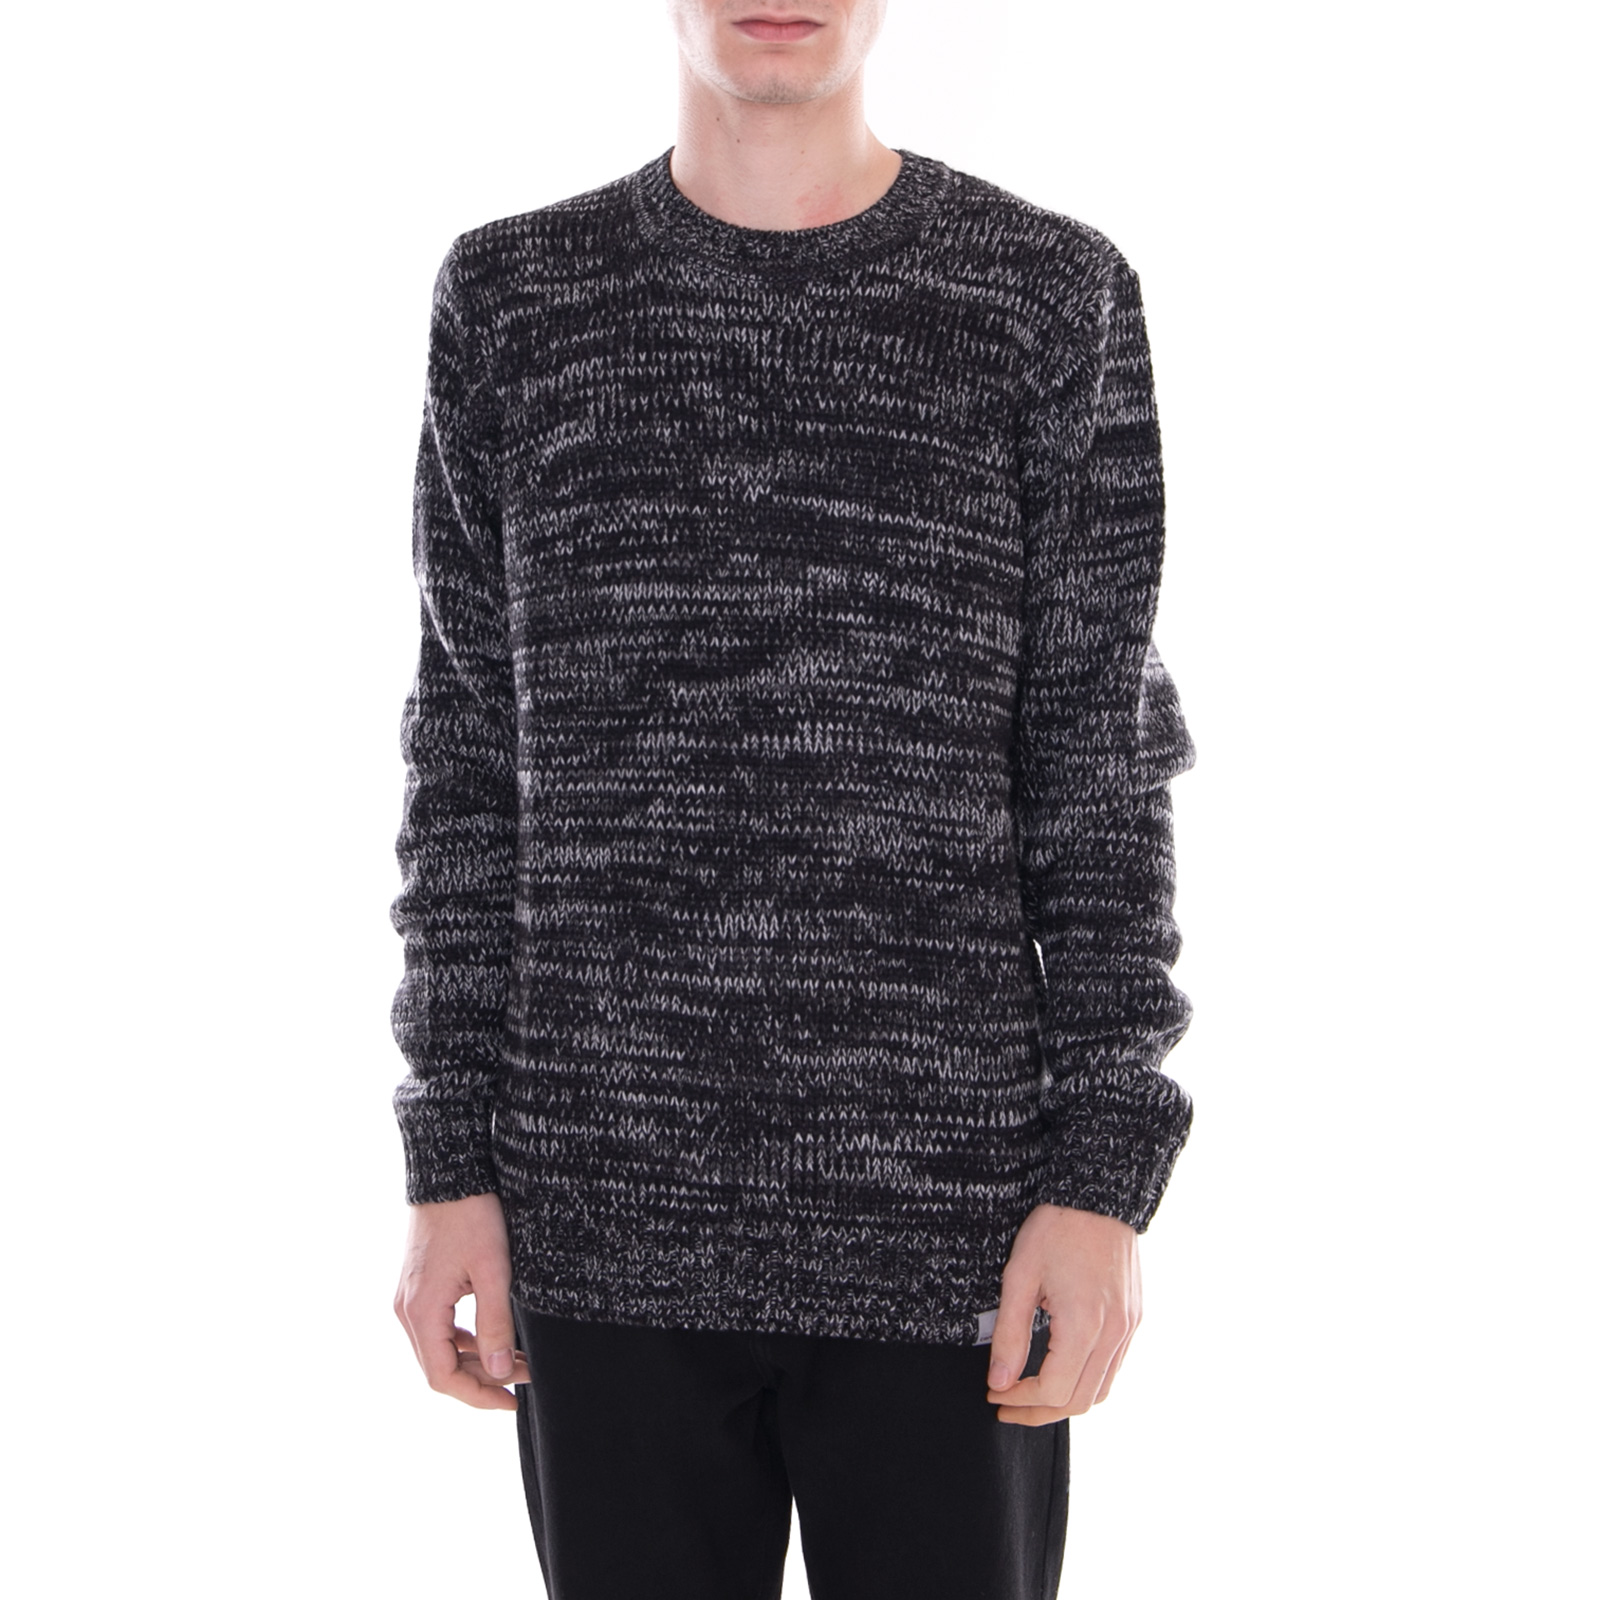 Sweater Blacksmith Morris Nero Heather grigio Carhartt Maglieria Nero SqHxBTa